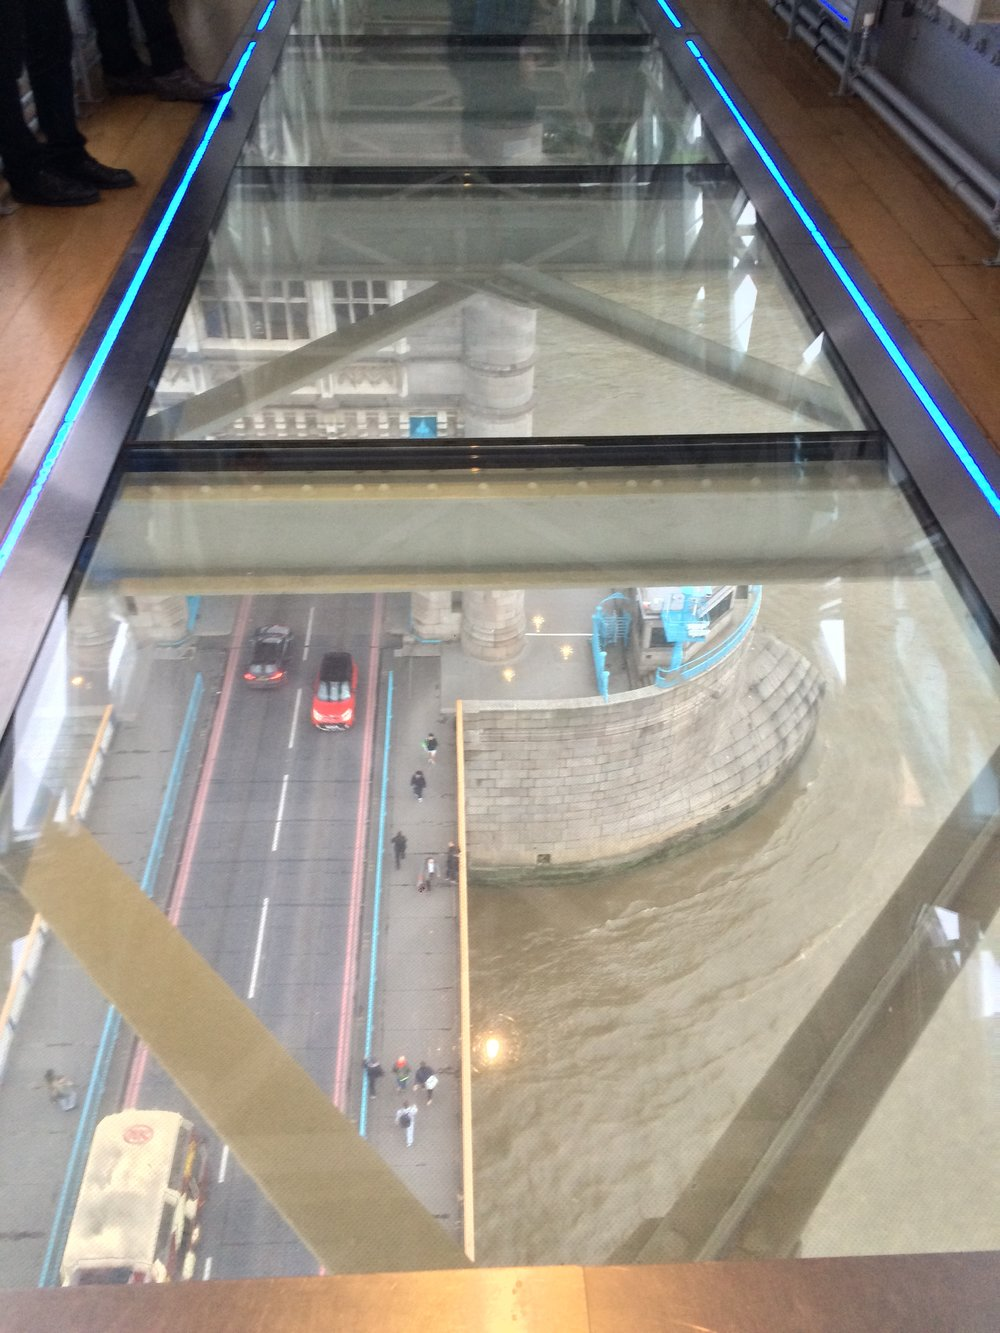 The Glass-Bottomed Walkway is the premier portion of the Tower Bridge Experience